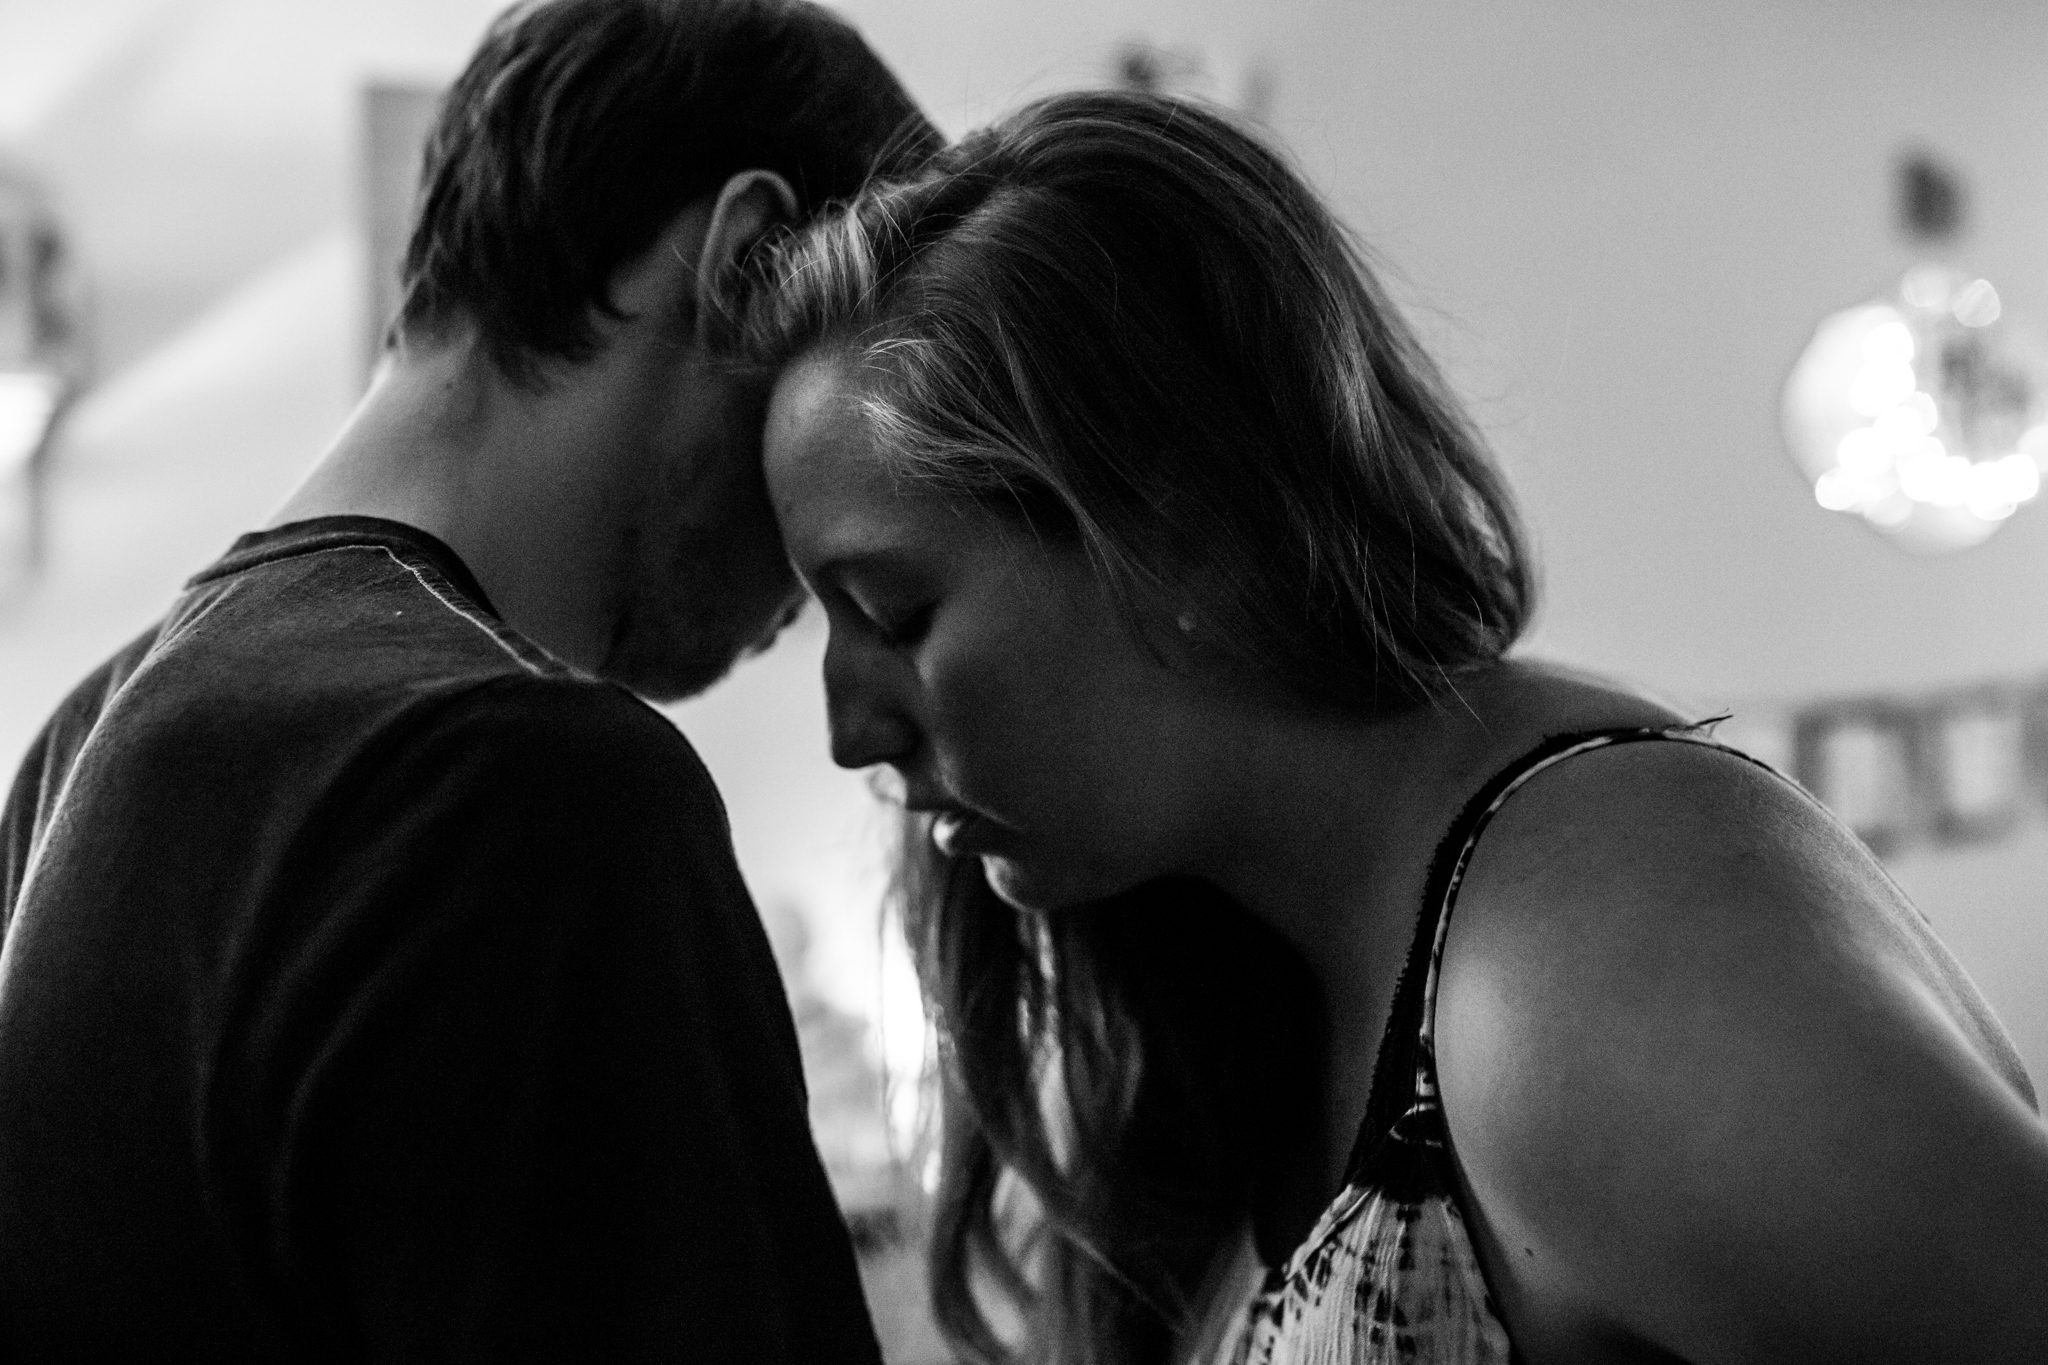 Lawren Rose Photography Dallas Birth Photographer takes a picture of a husband and wife standing very close with their faces near each other during a contraction